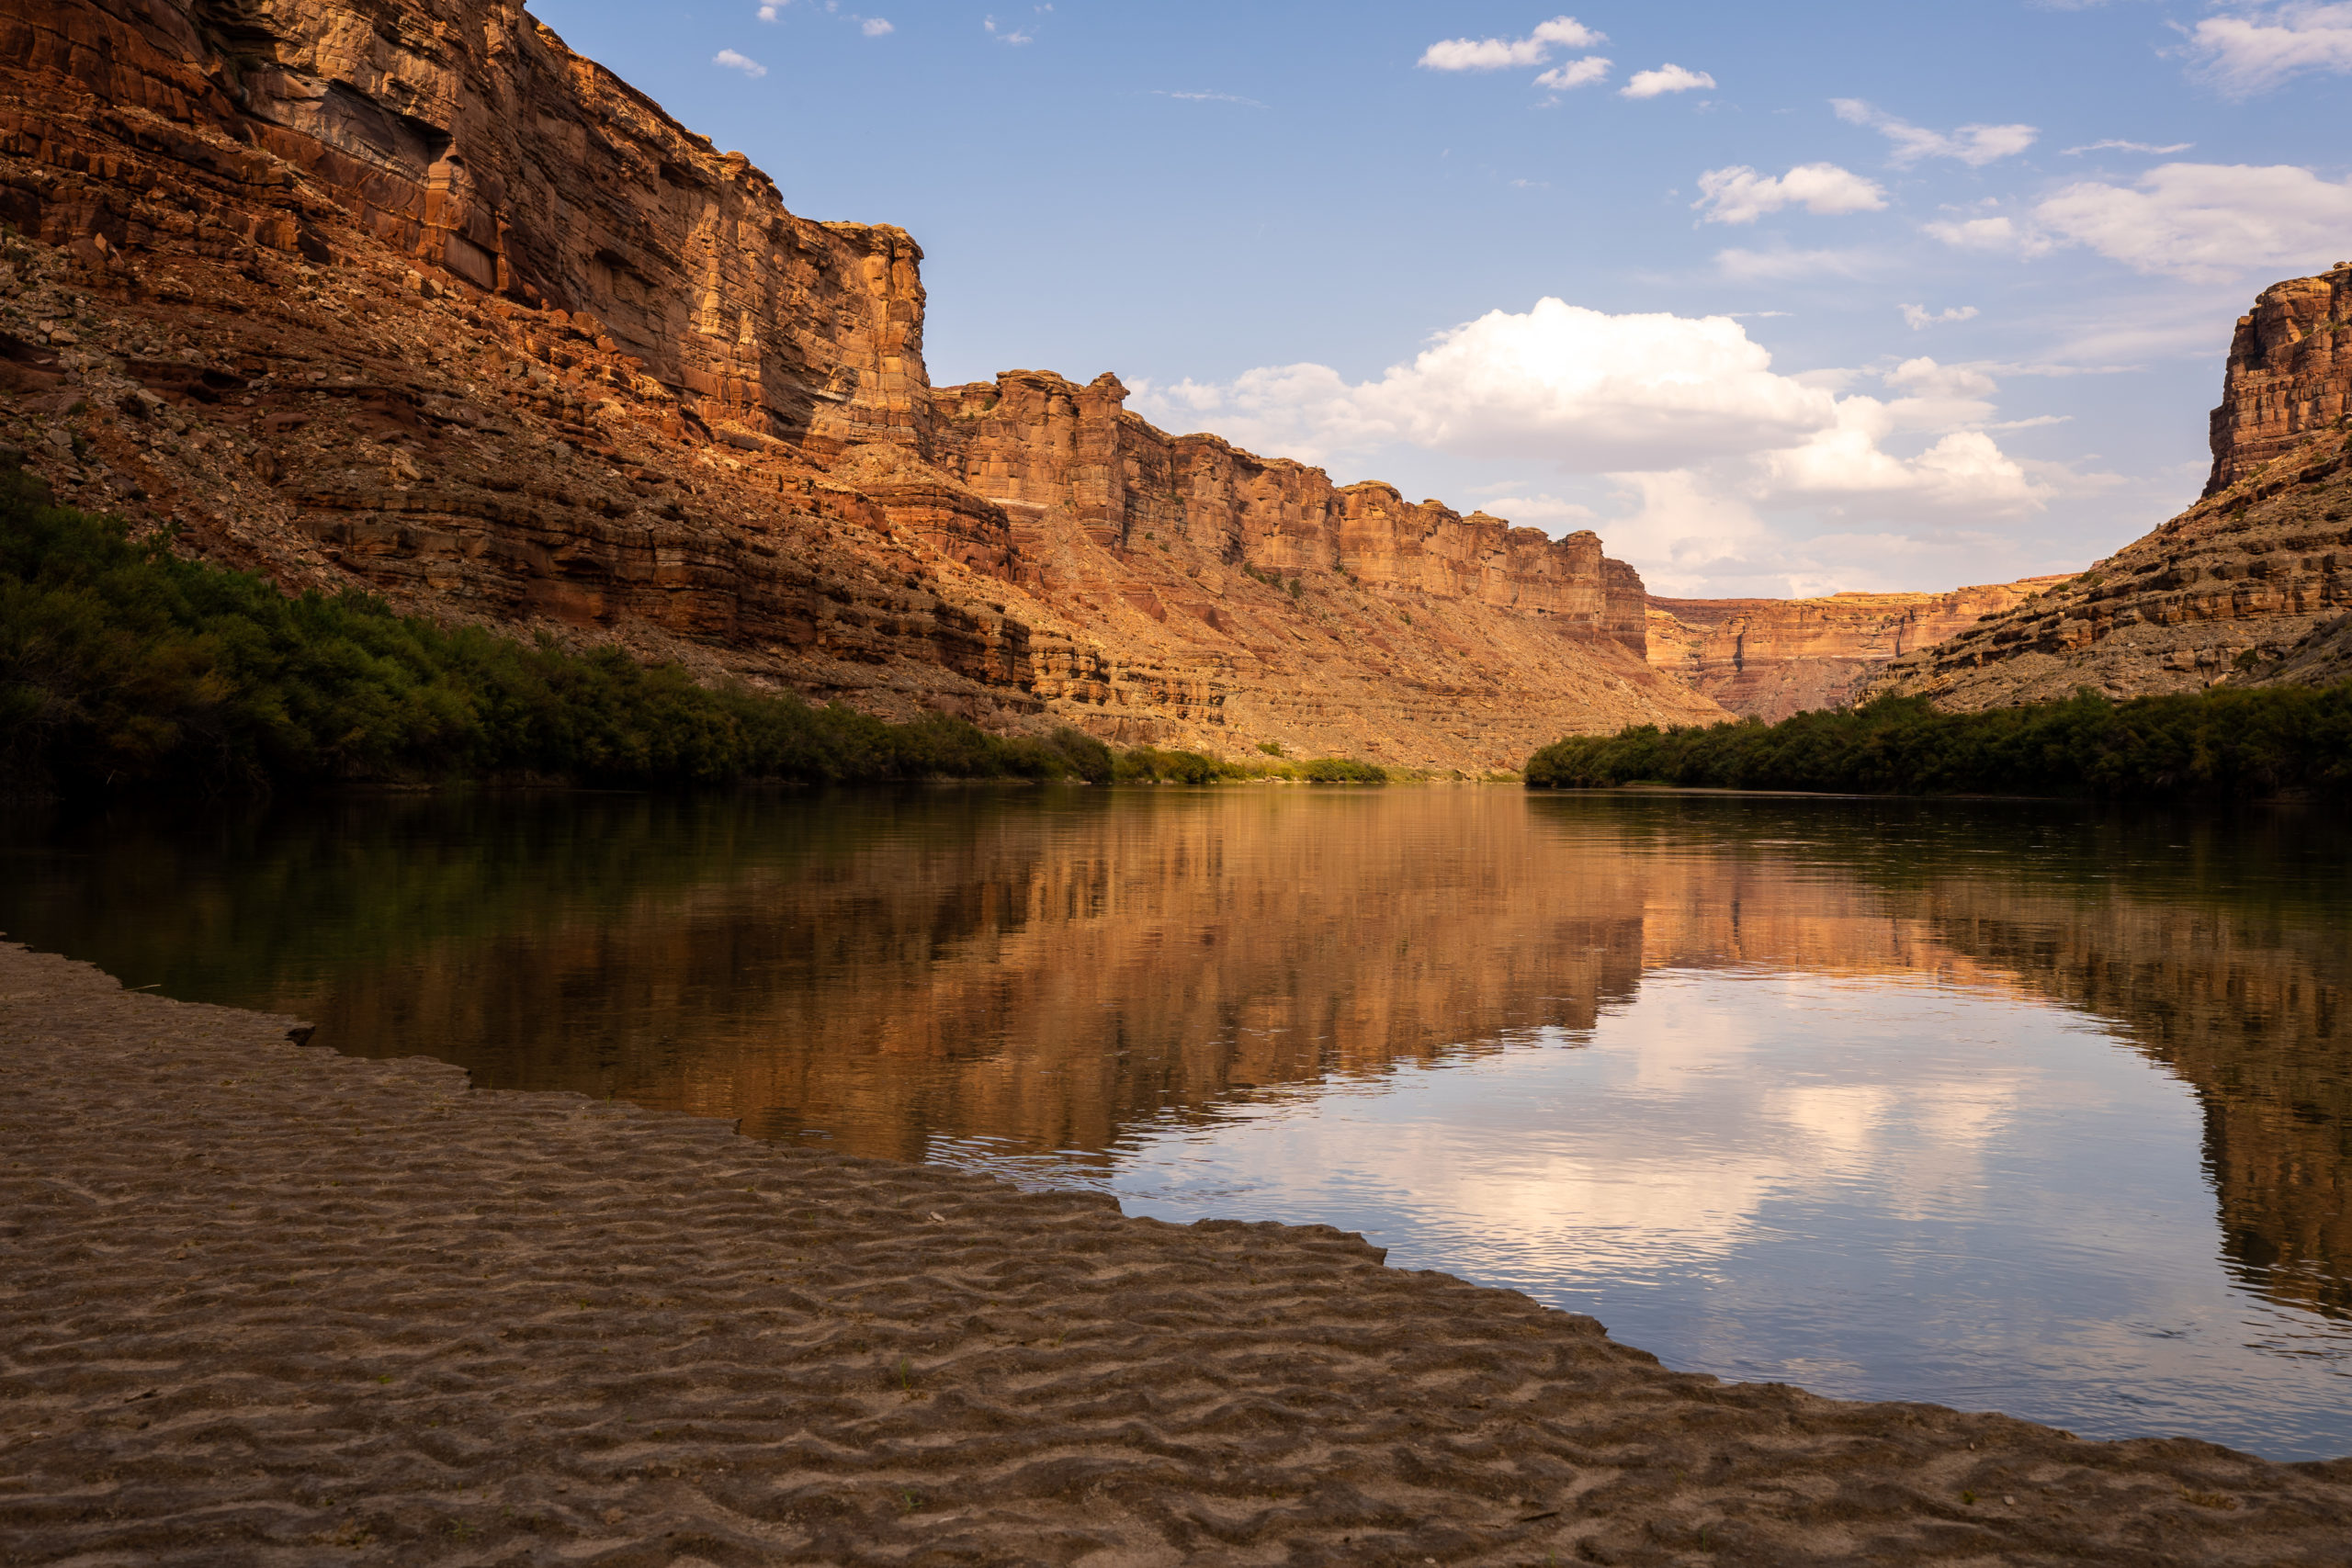 Stillwater Canyon - Green River - Canyonlands